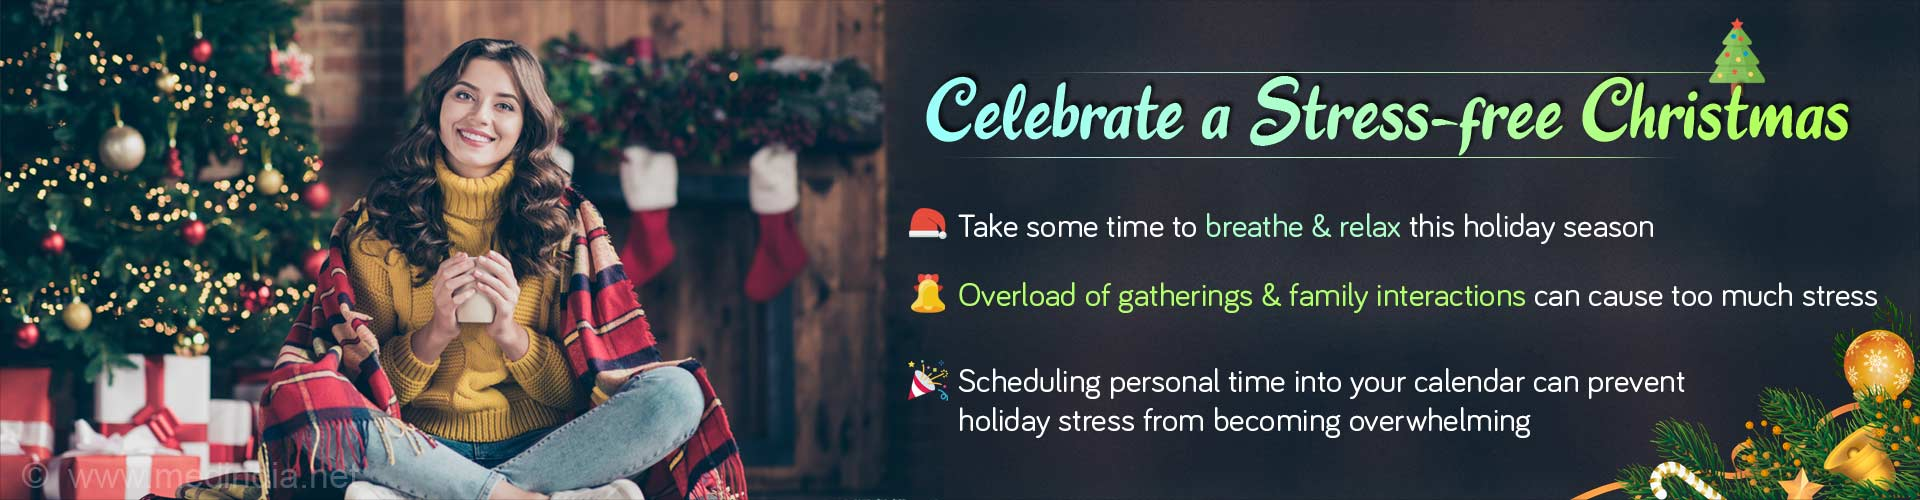 Beat the Holiday Blues: Dazzling Tips to Overcome Holiday Stress